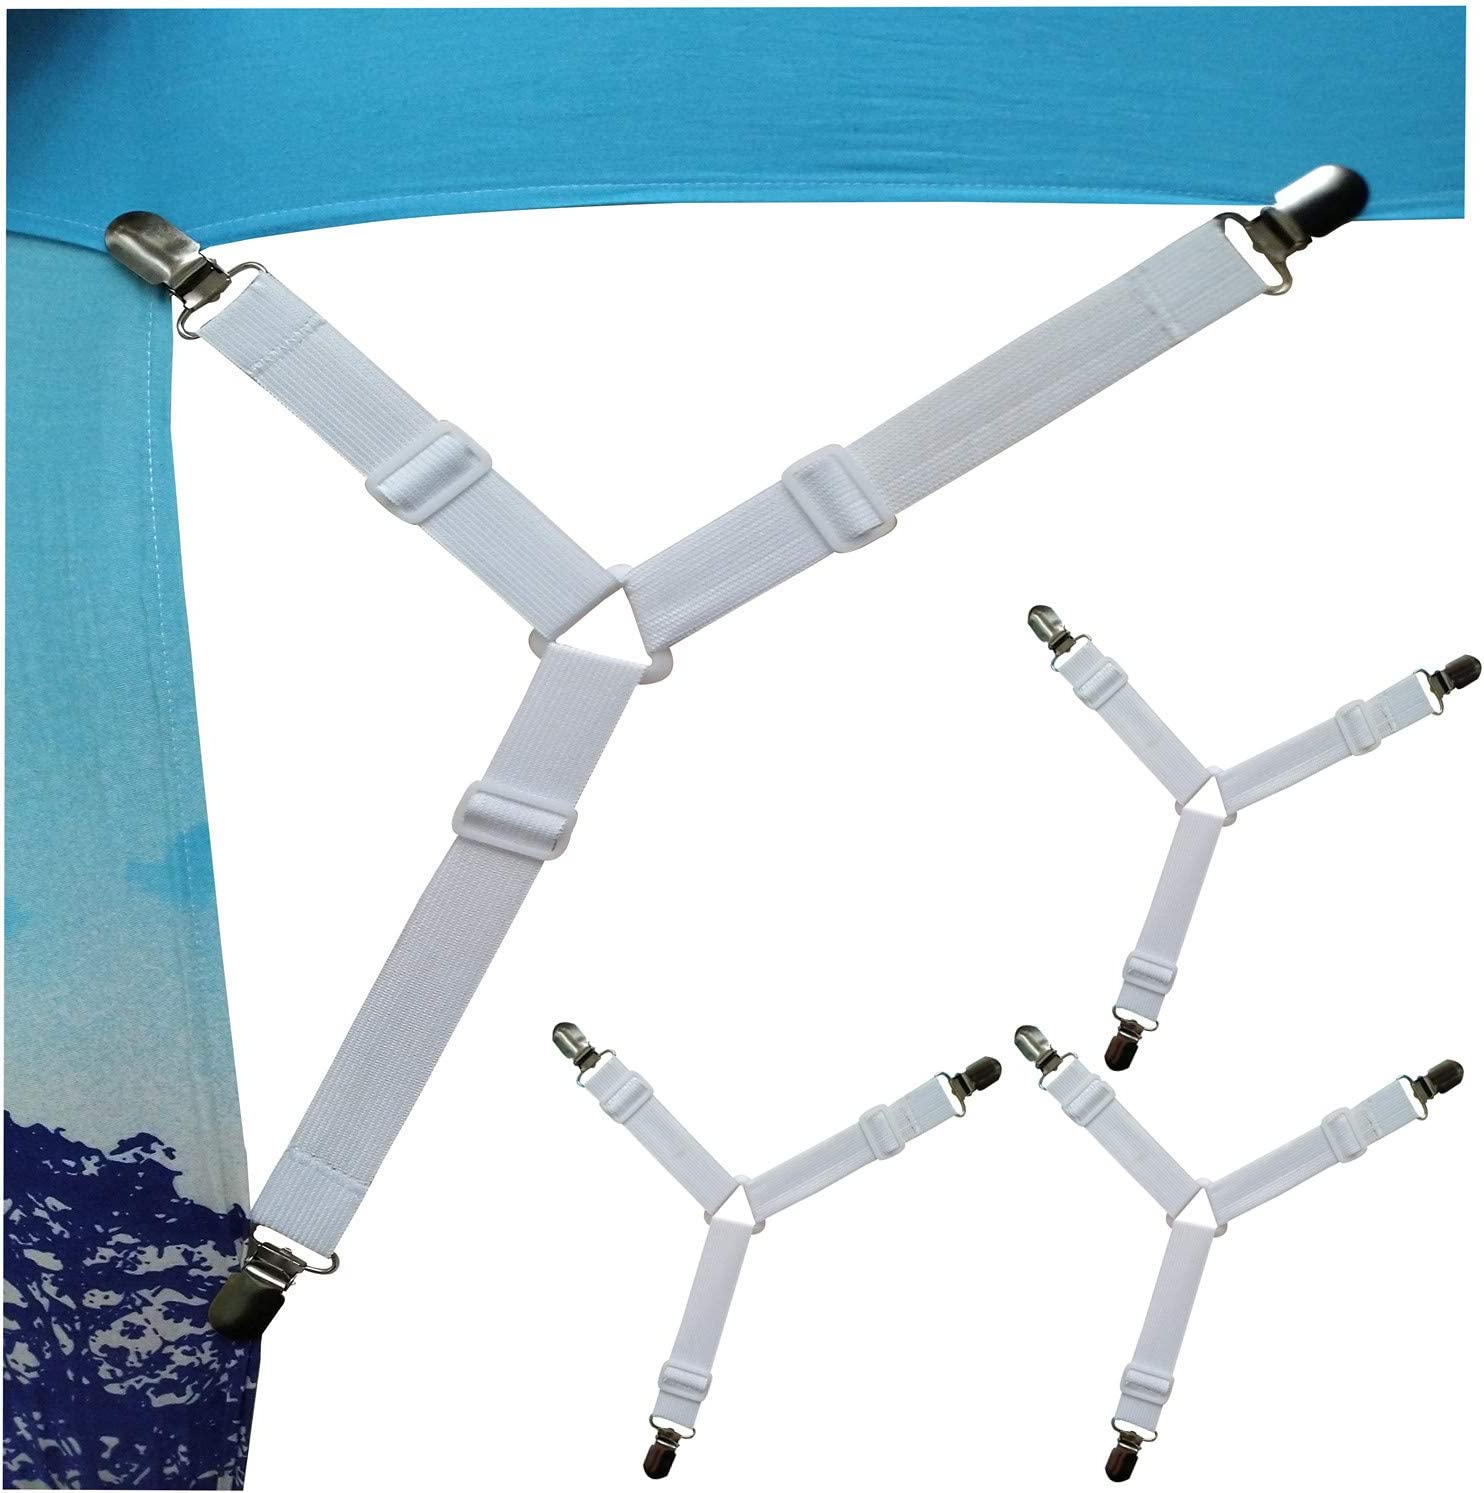 Wendy Mall 4pcs//lot Triangle Bed Sheet Clips Bed Button Buckles Elastic Fasteners Grippers Holder Mattress Cover Blankets Straps Suspender White